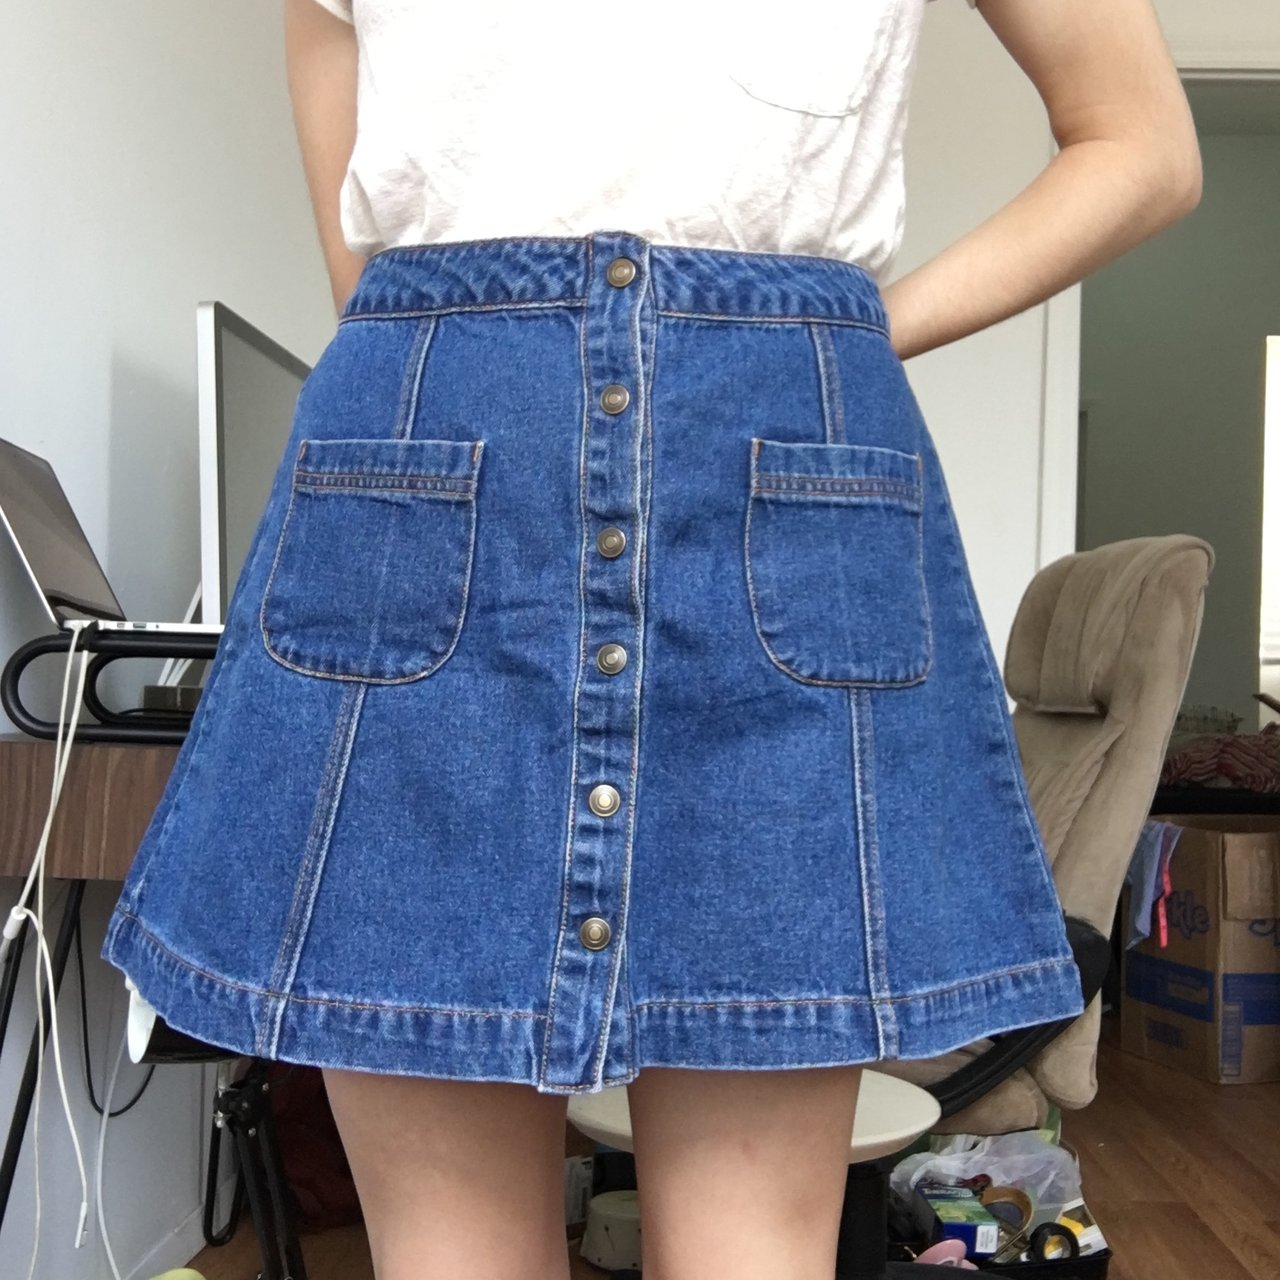 984d65b8a9 Button Front Denim Skirt Forever 21